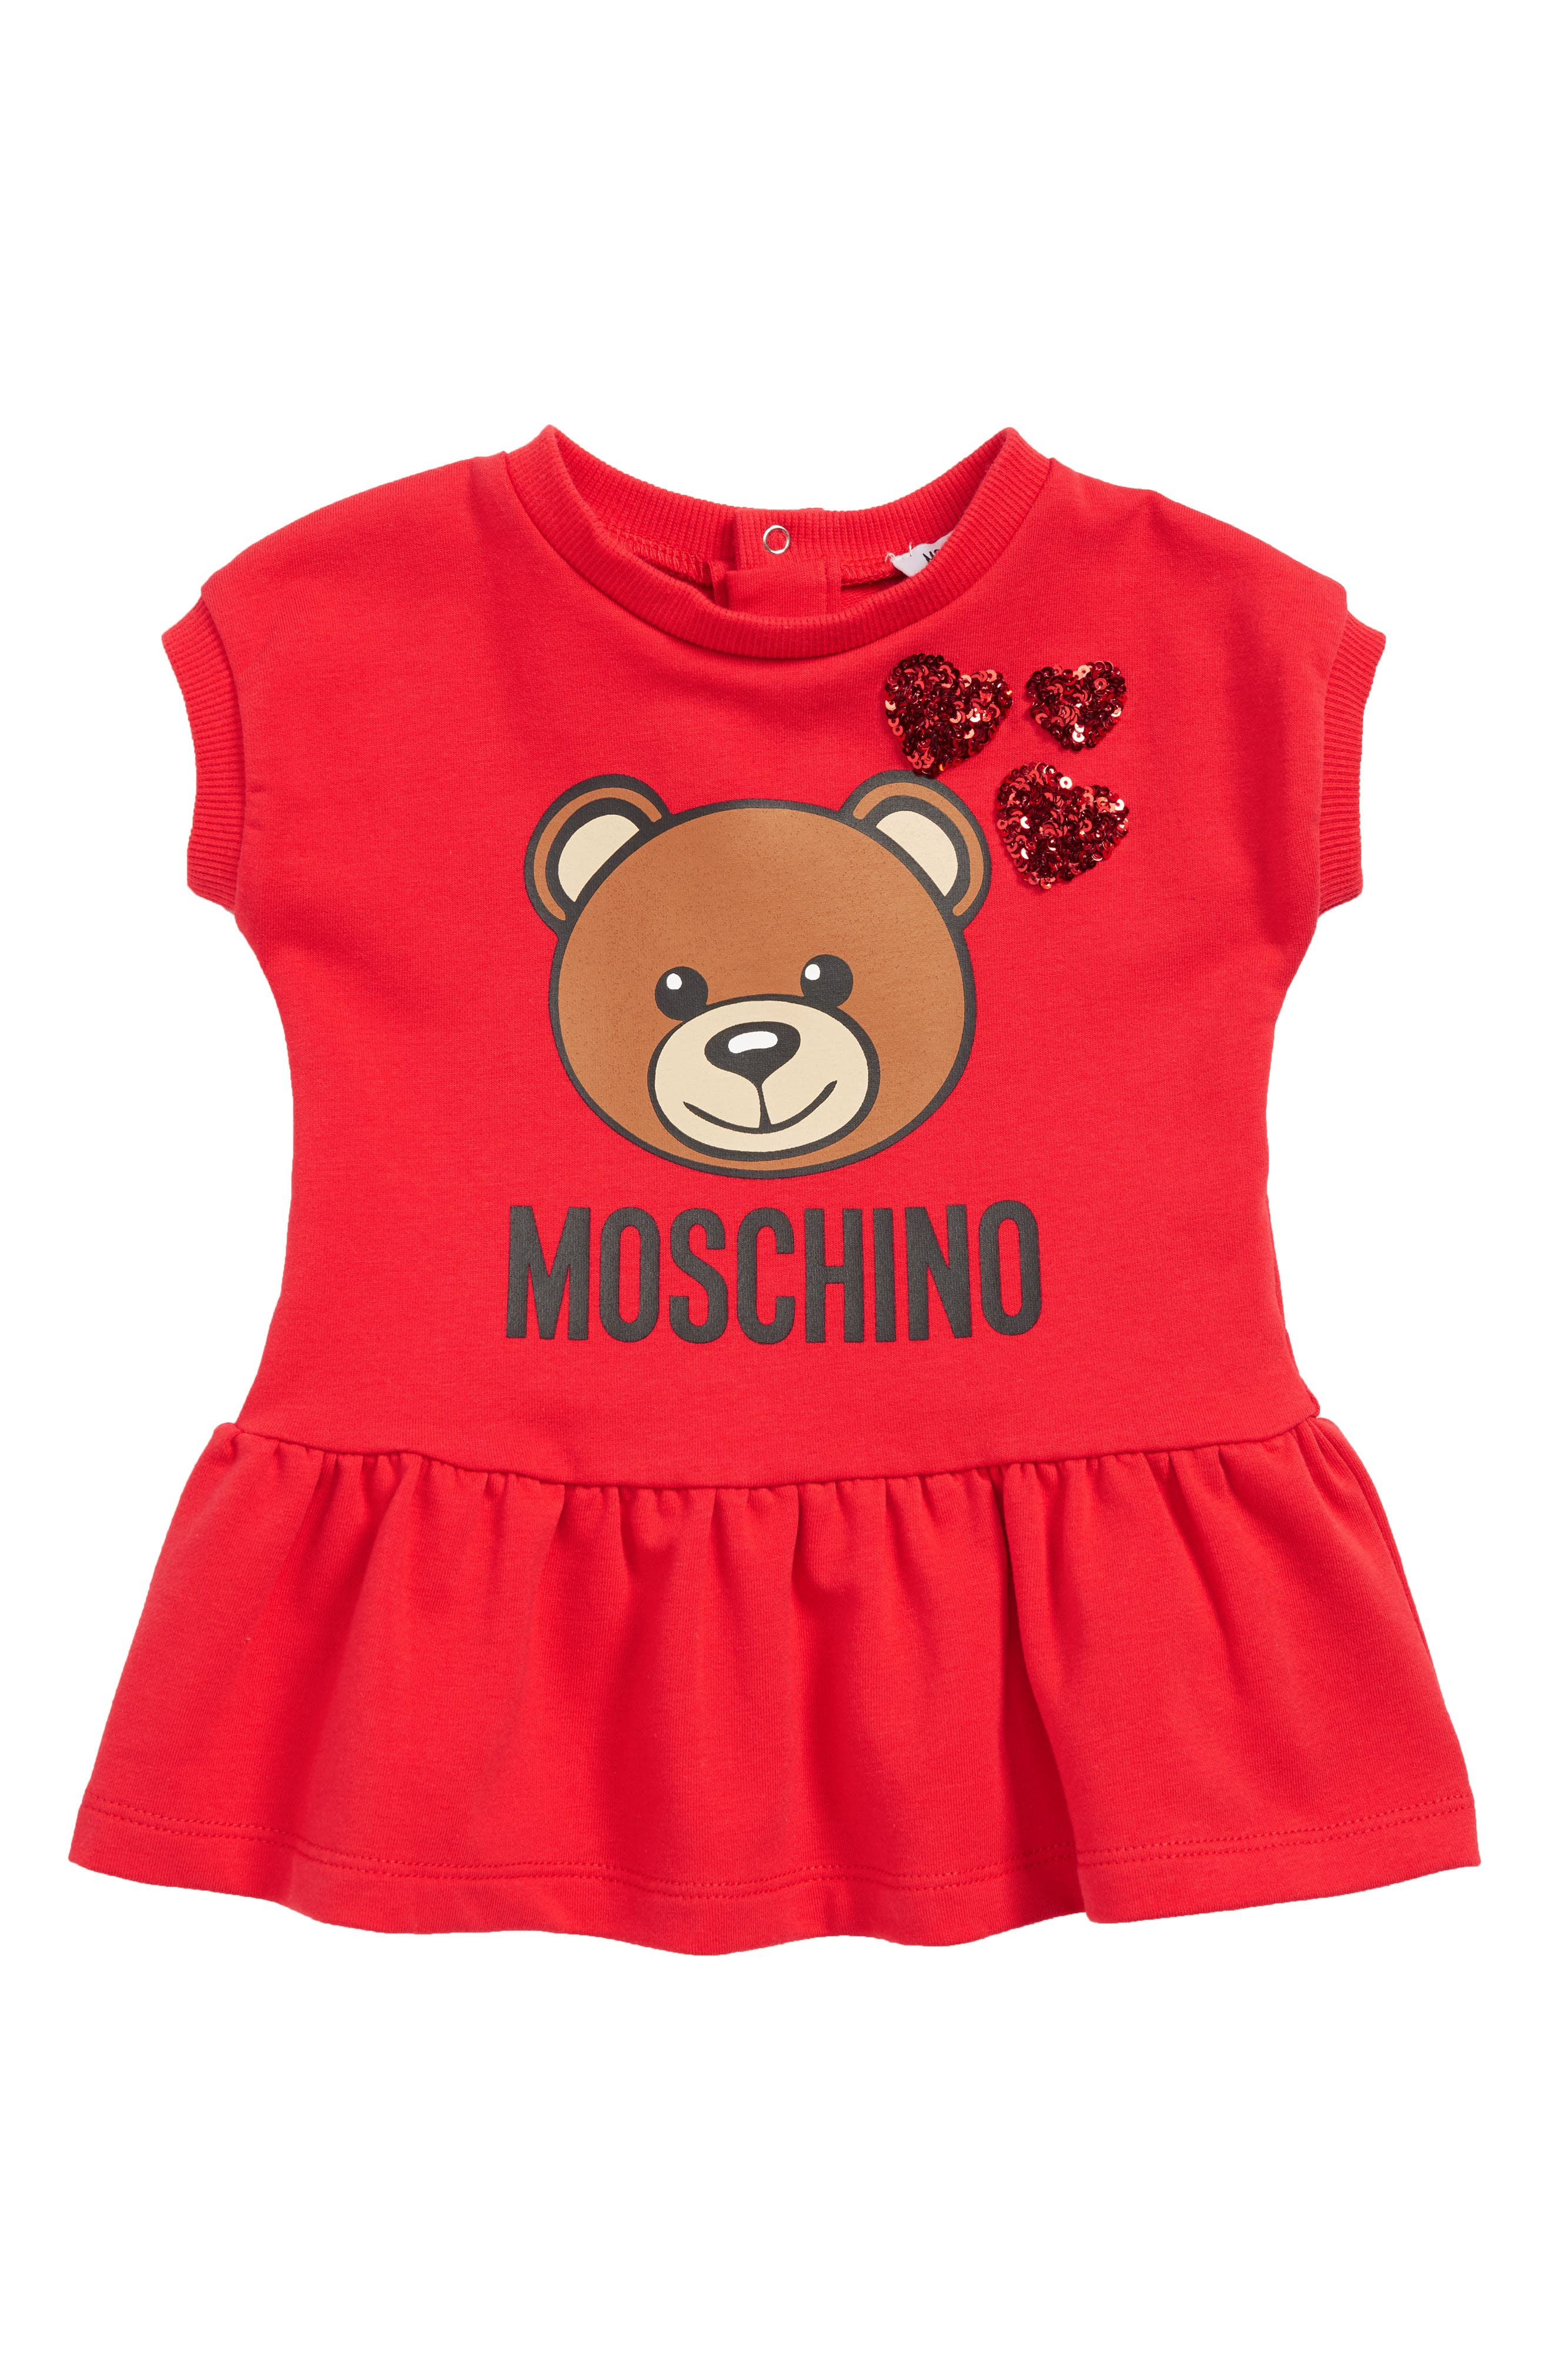 MOSCHINO Toy Bear & Sequin Heart Dress, Main, color, 600